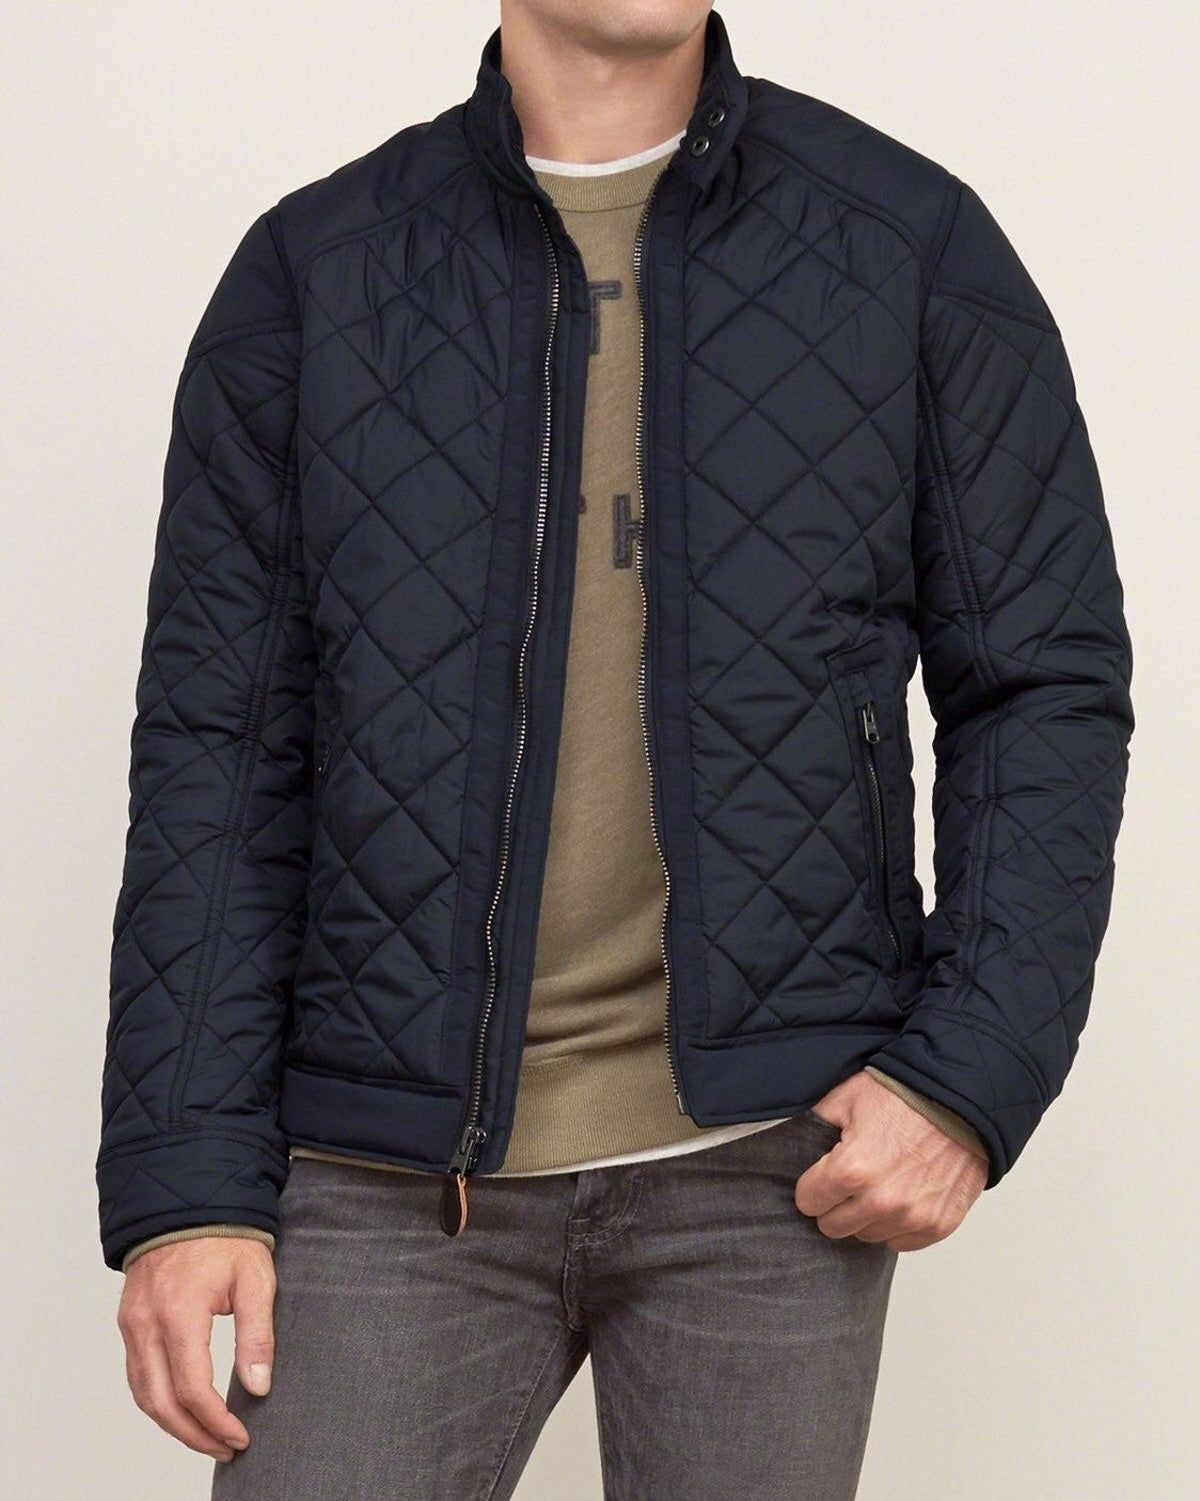 Abercrombie And Fitch Quilted Bomber Mens Outerwear Jacket Quilted Jacket Men Quilted Bomber Jacket [ 1501 x 1200 Pixel ]